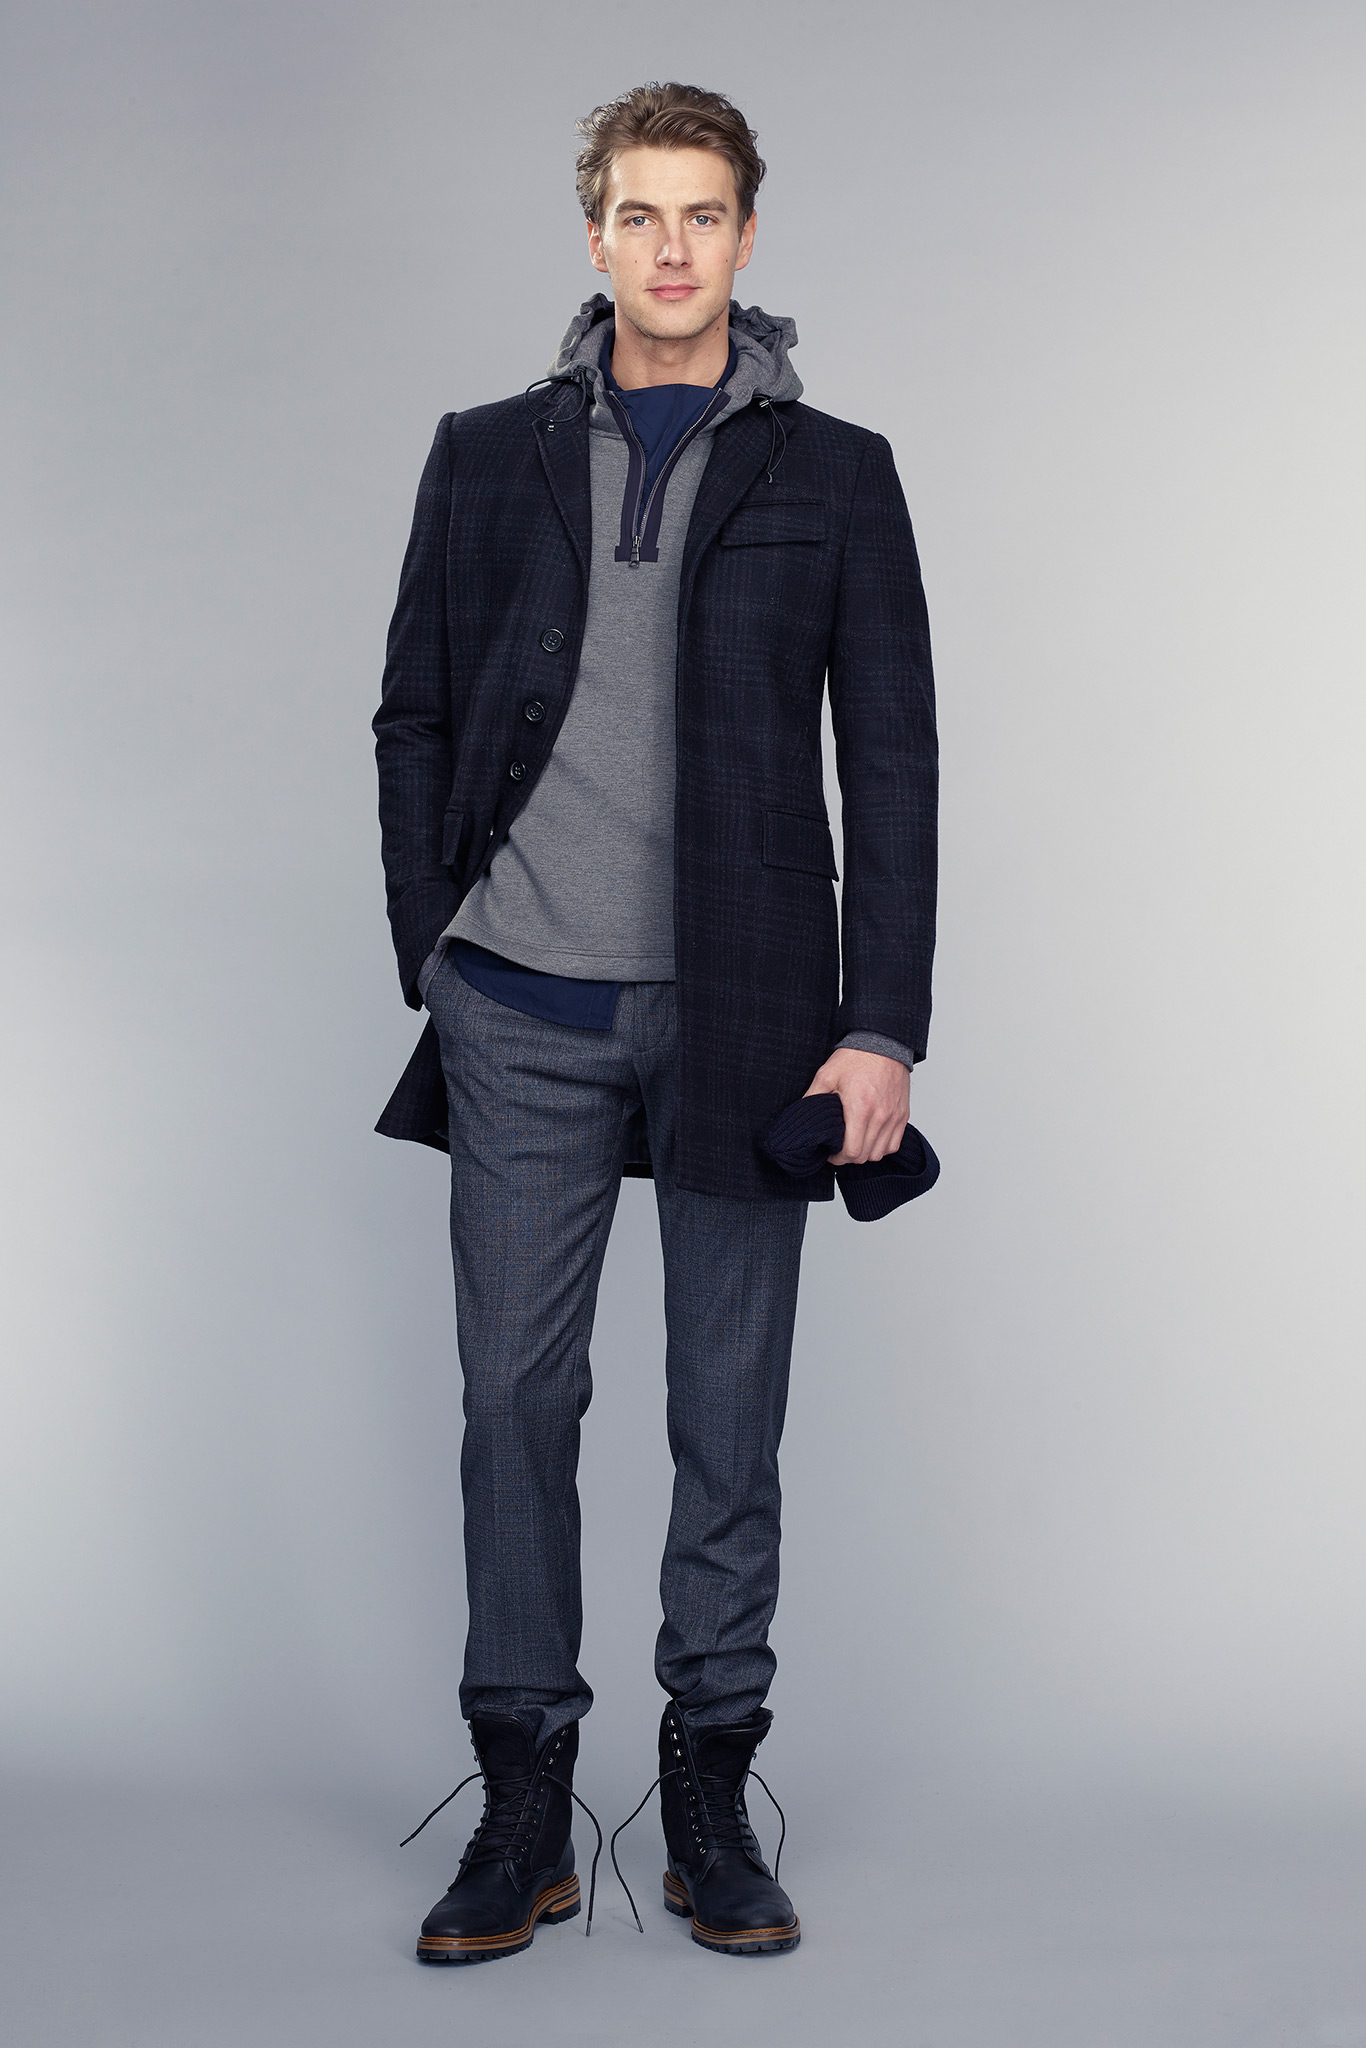 Banana-Republic-Fall-Winter-2015-2016-Mens-Collection-12